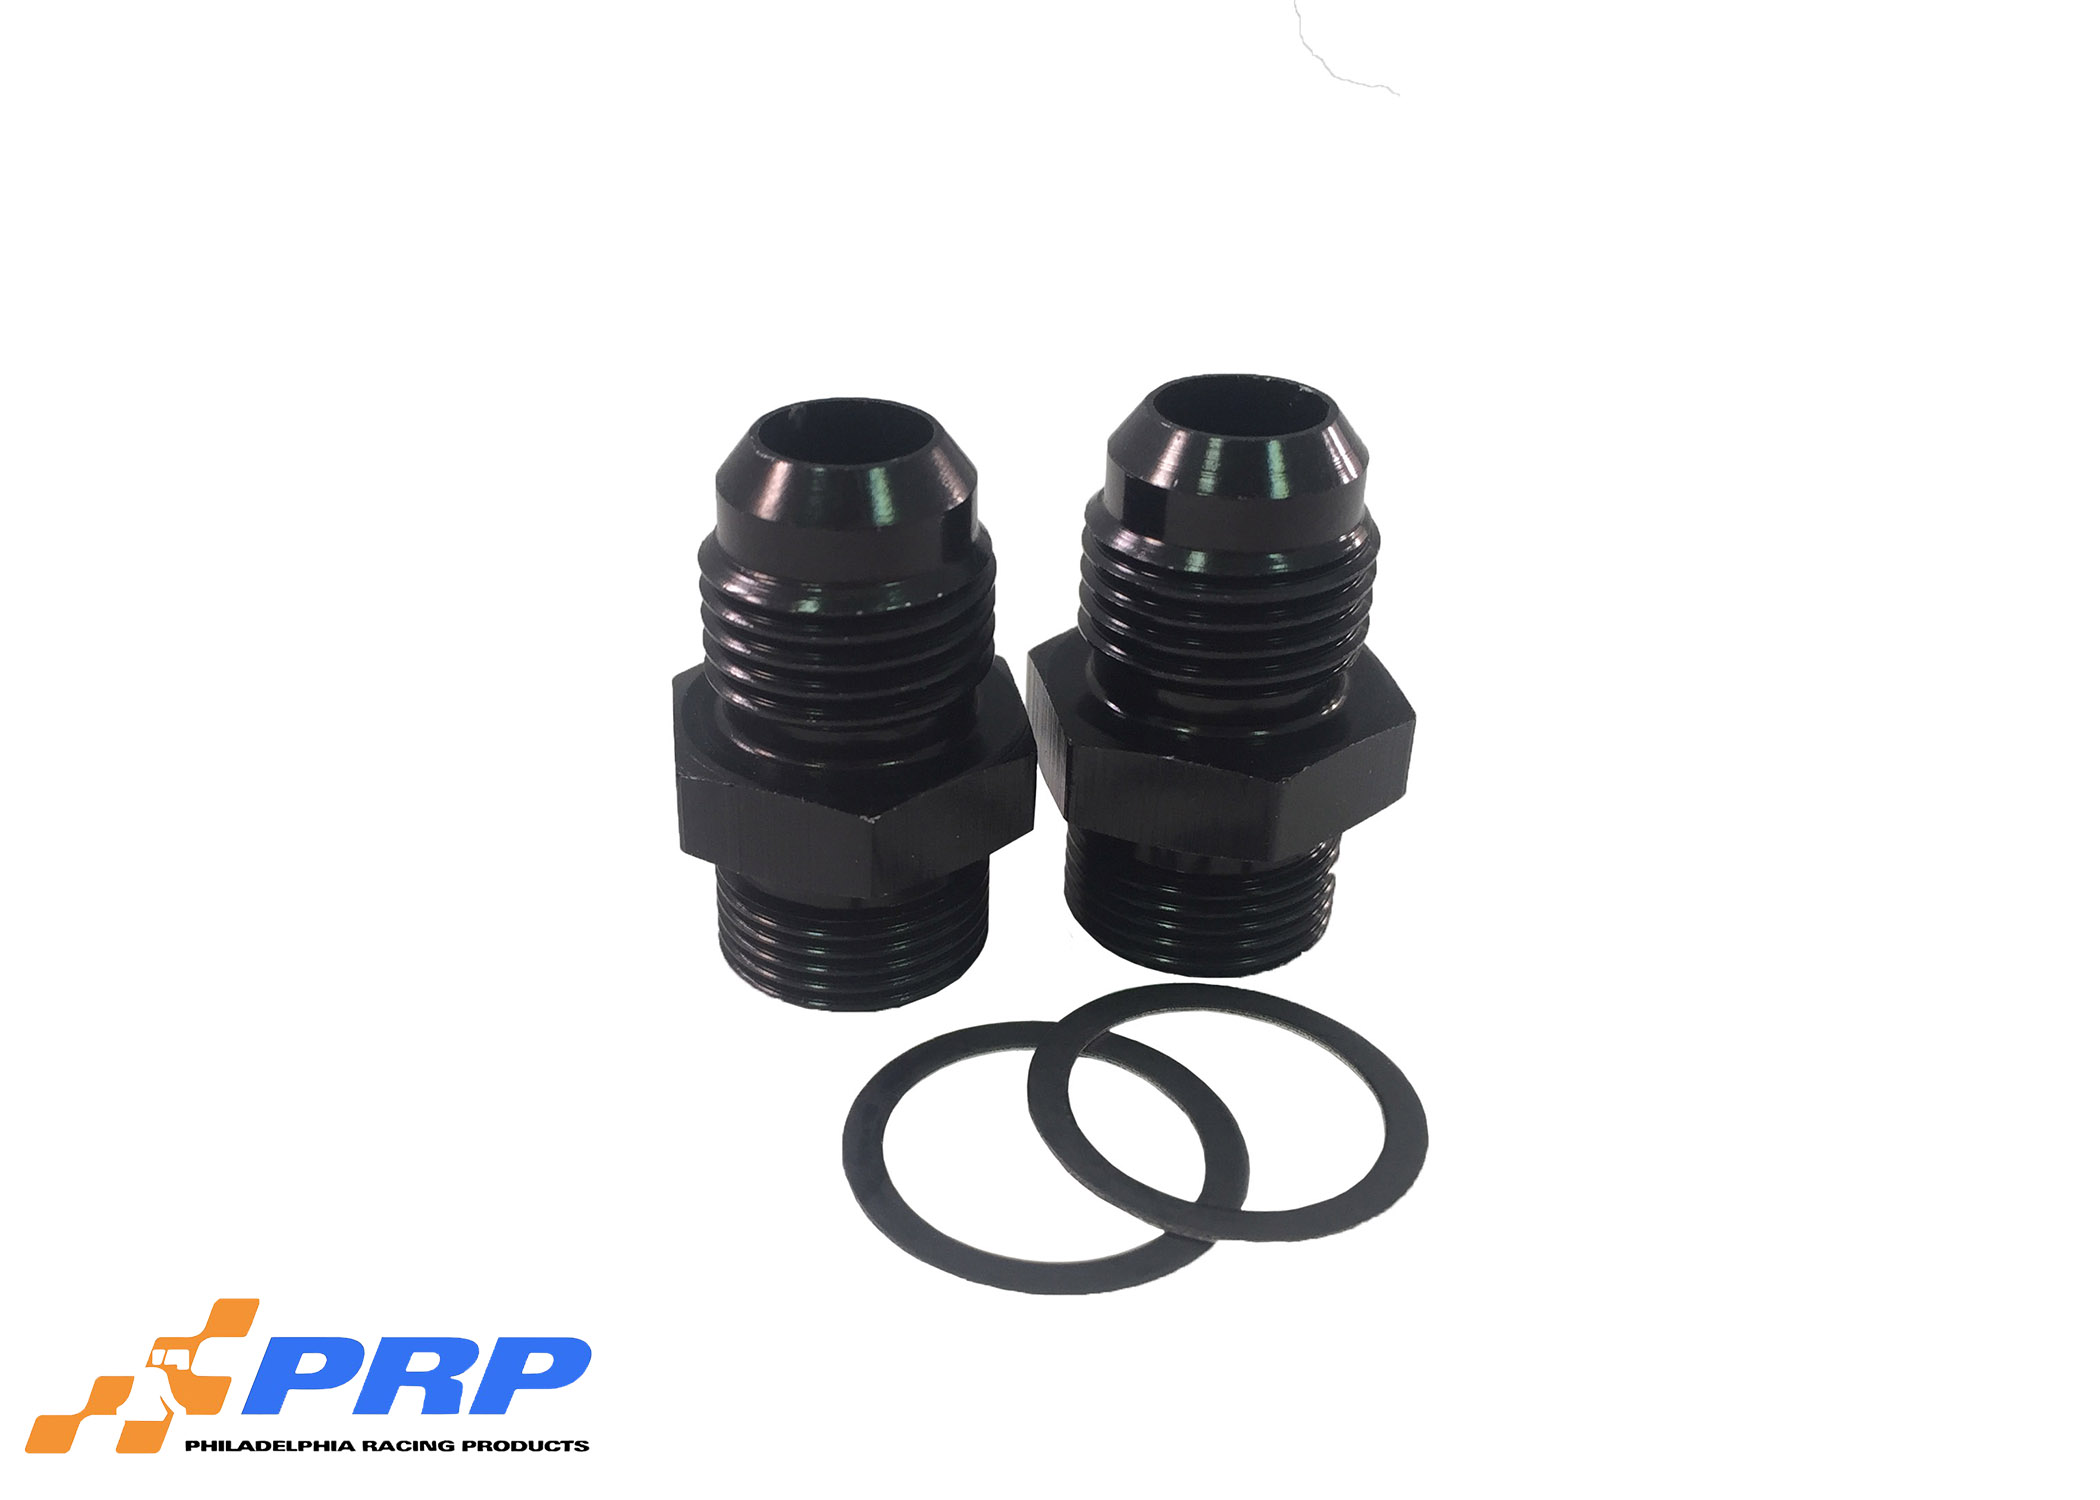 Black Carburetor Inlet Fittings made by PRP Racing Products